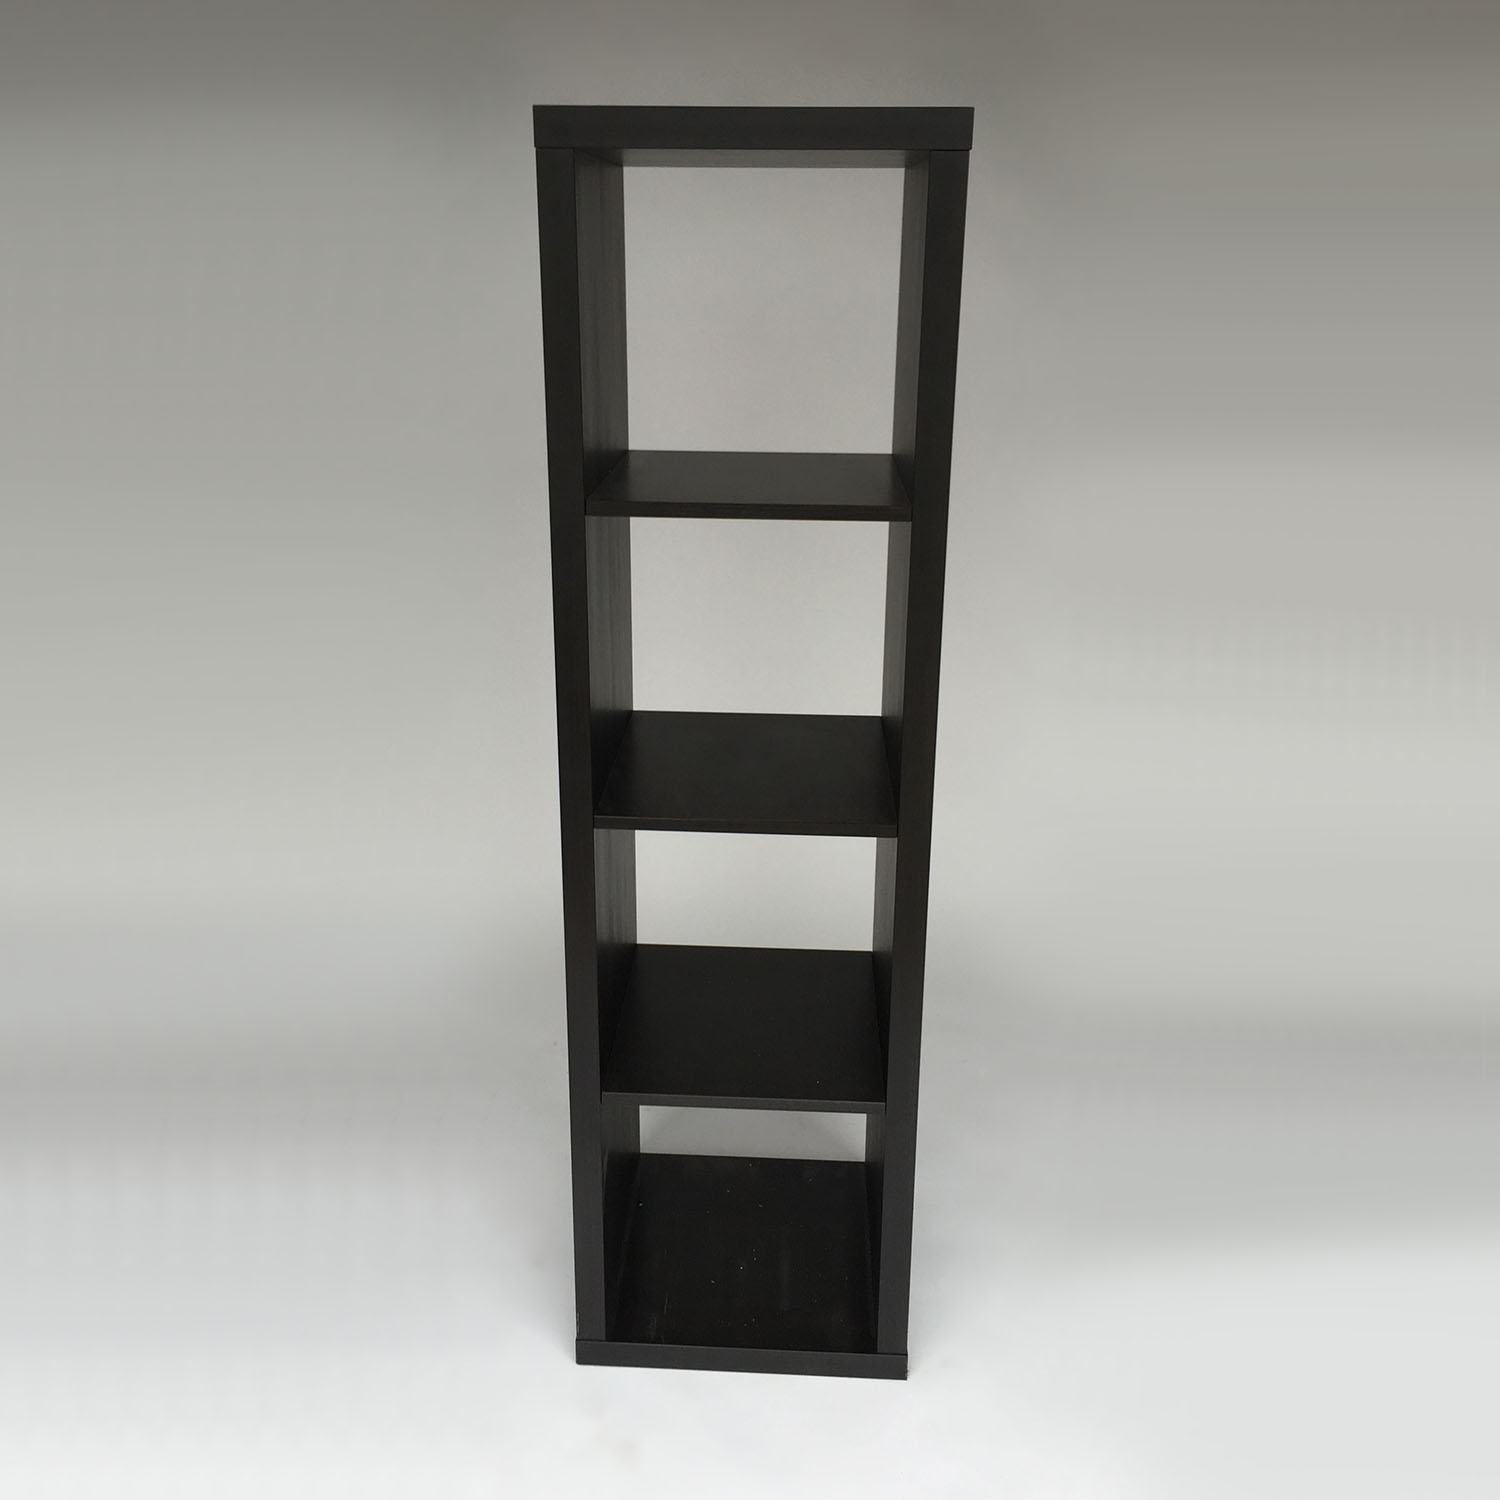 buy online cea81 940b6 58% OFF - IKEA Kallax Shelving Unit / Storage